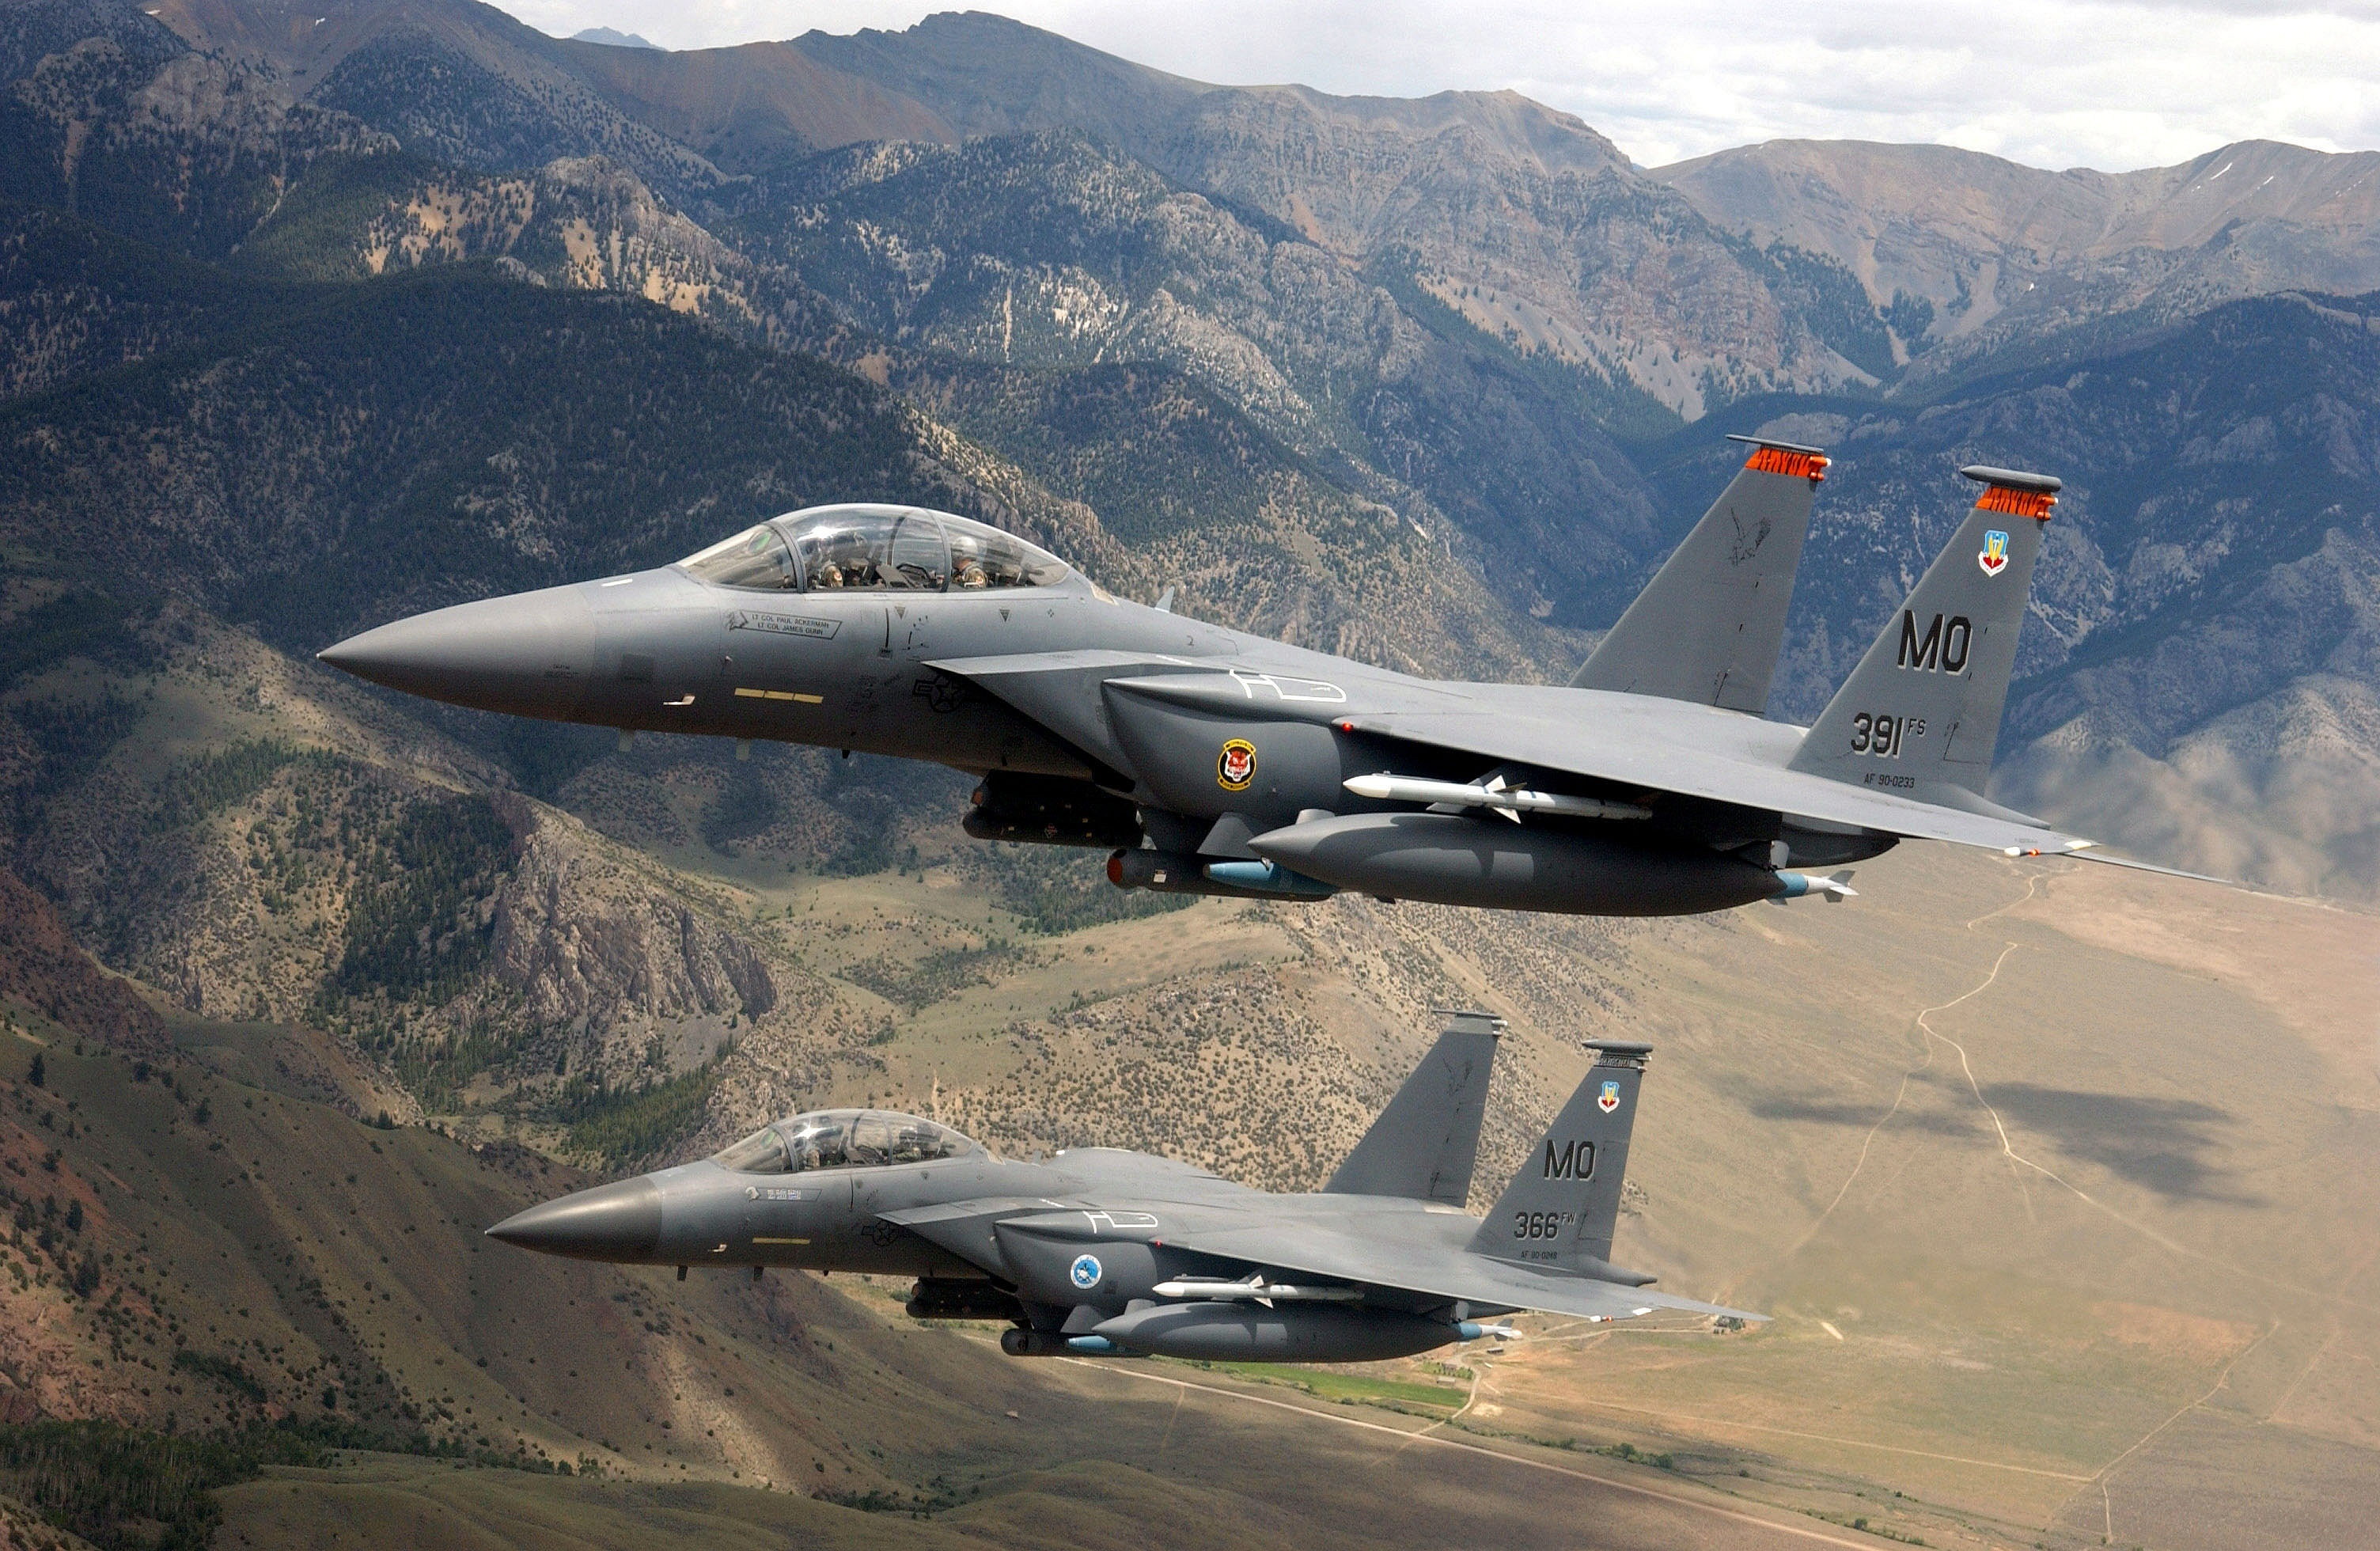 aircrafts Eagles f-15 eagle HD Wallpaper